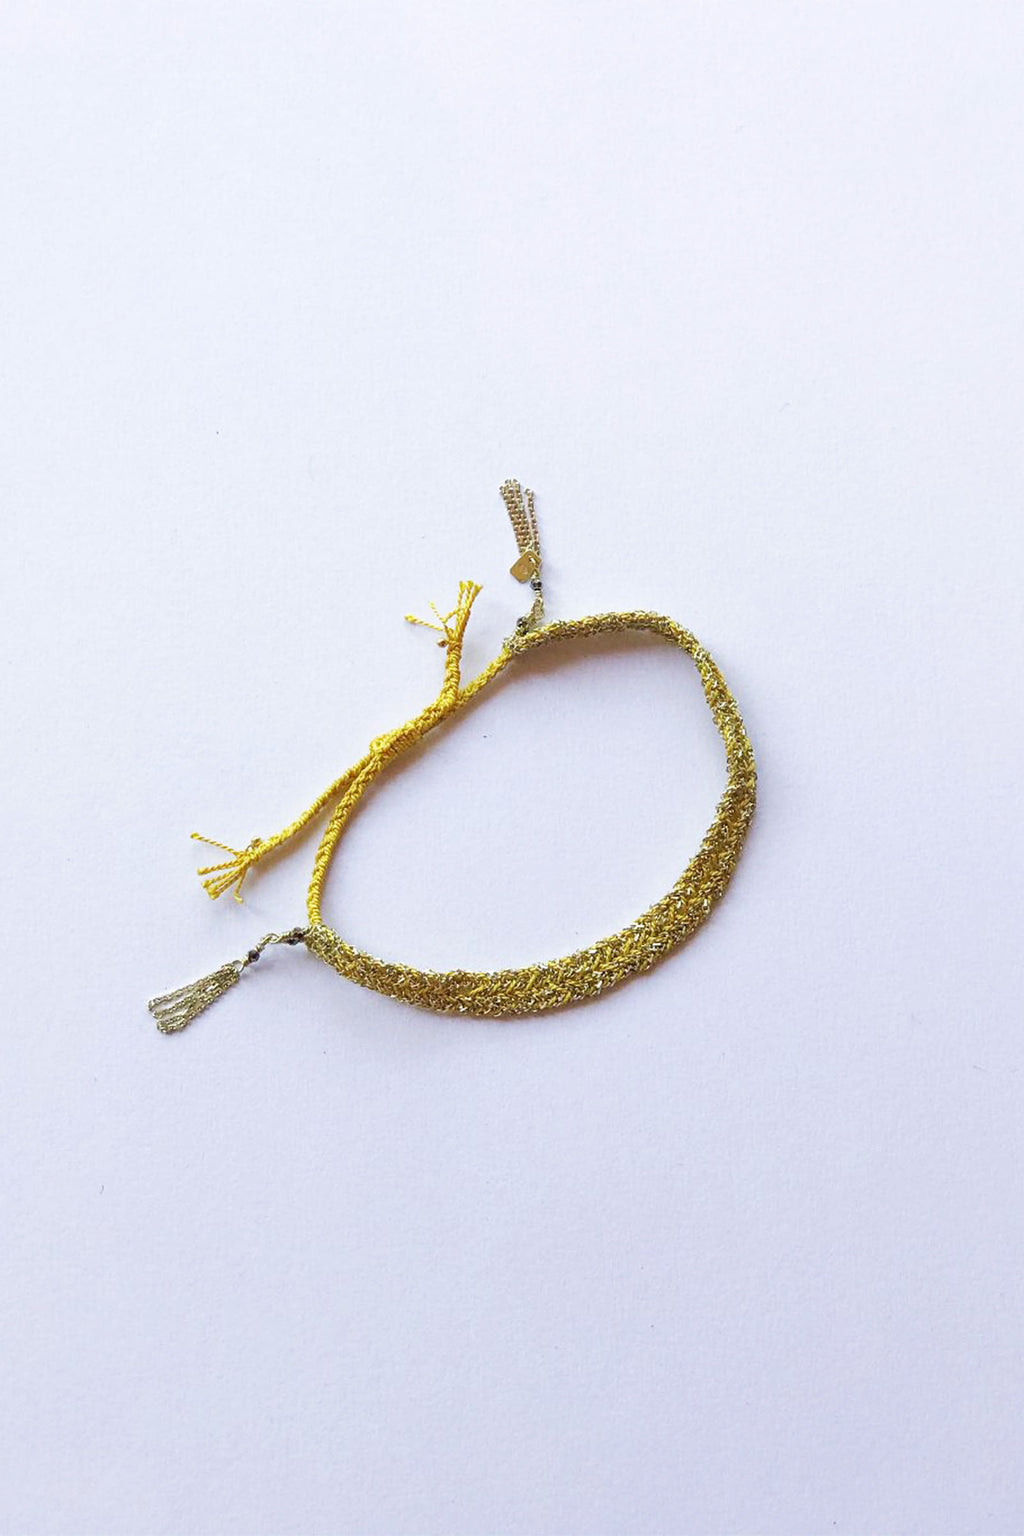 Marie Laure Chamorel 24K Gold and Sterling Silver Bracelet Gold Yellow